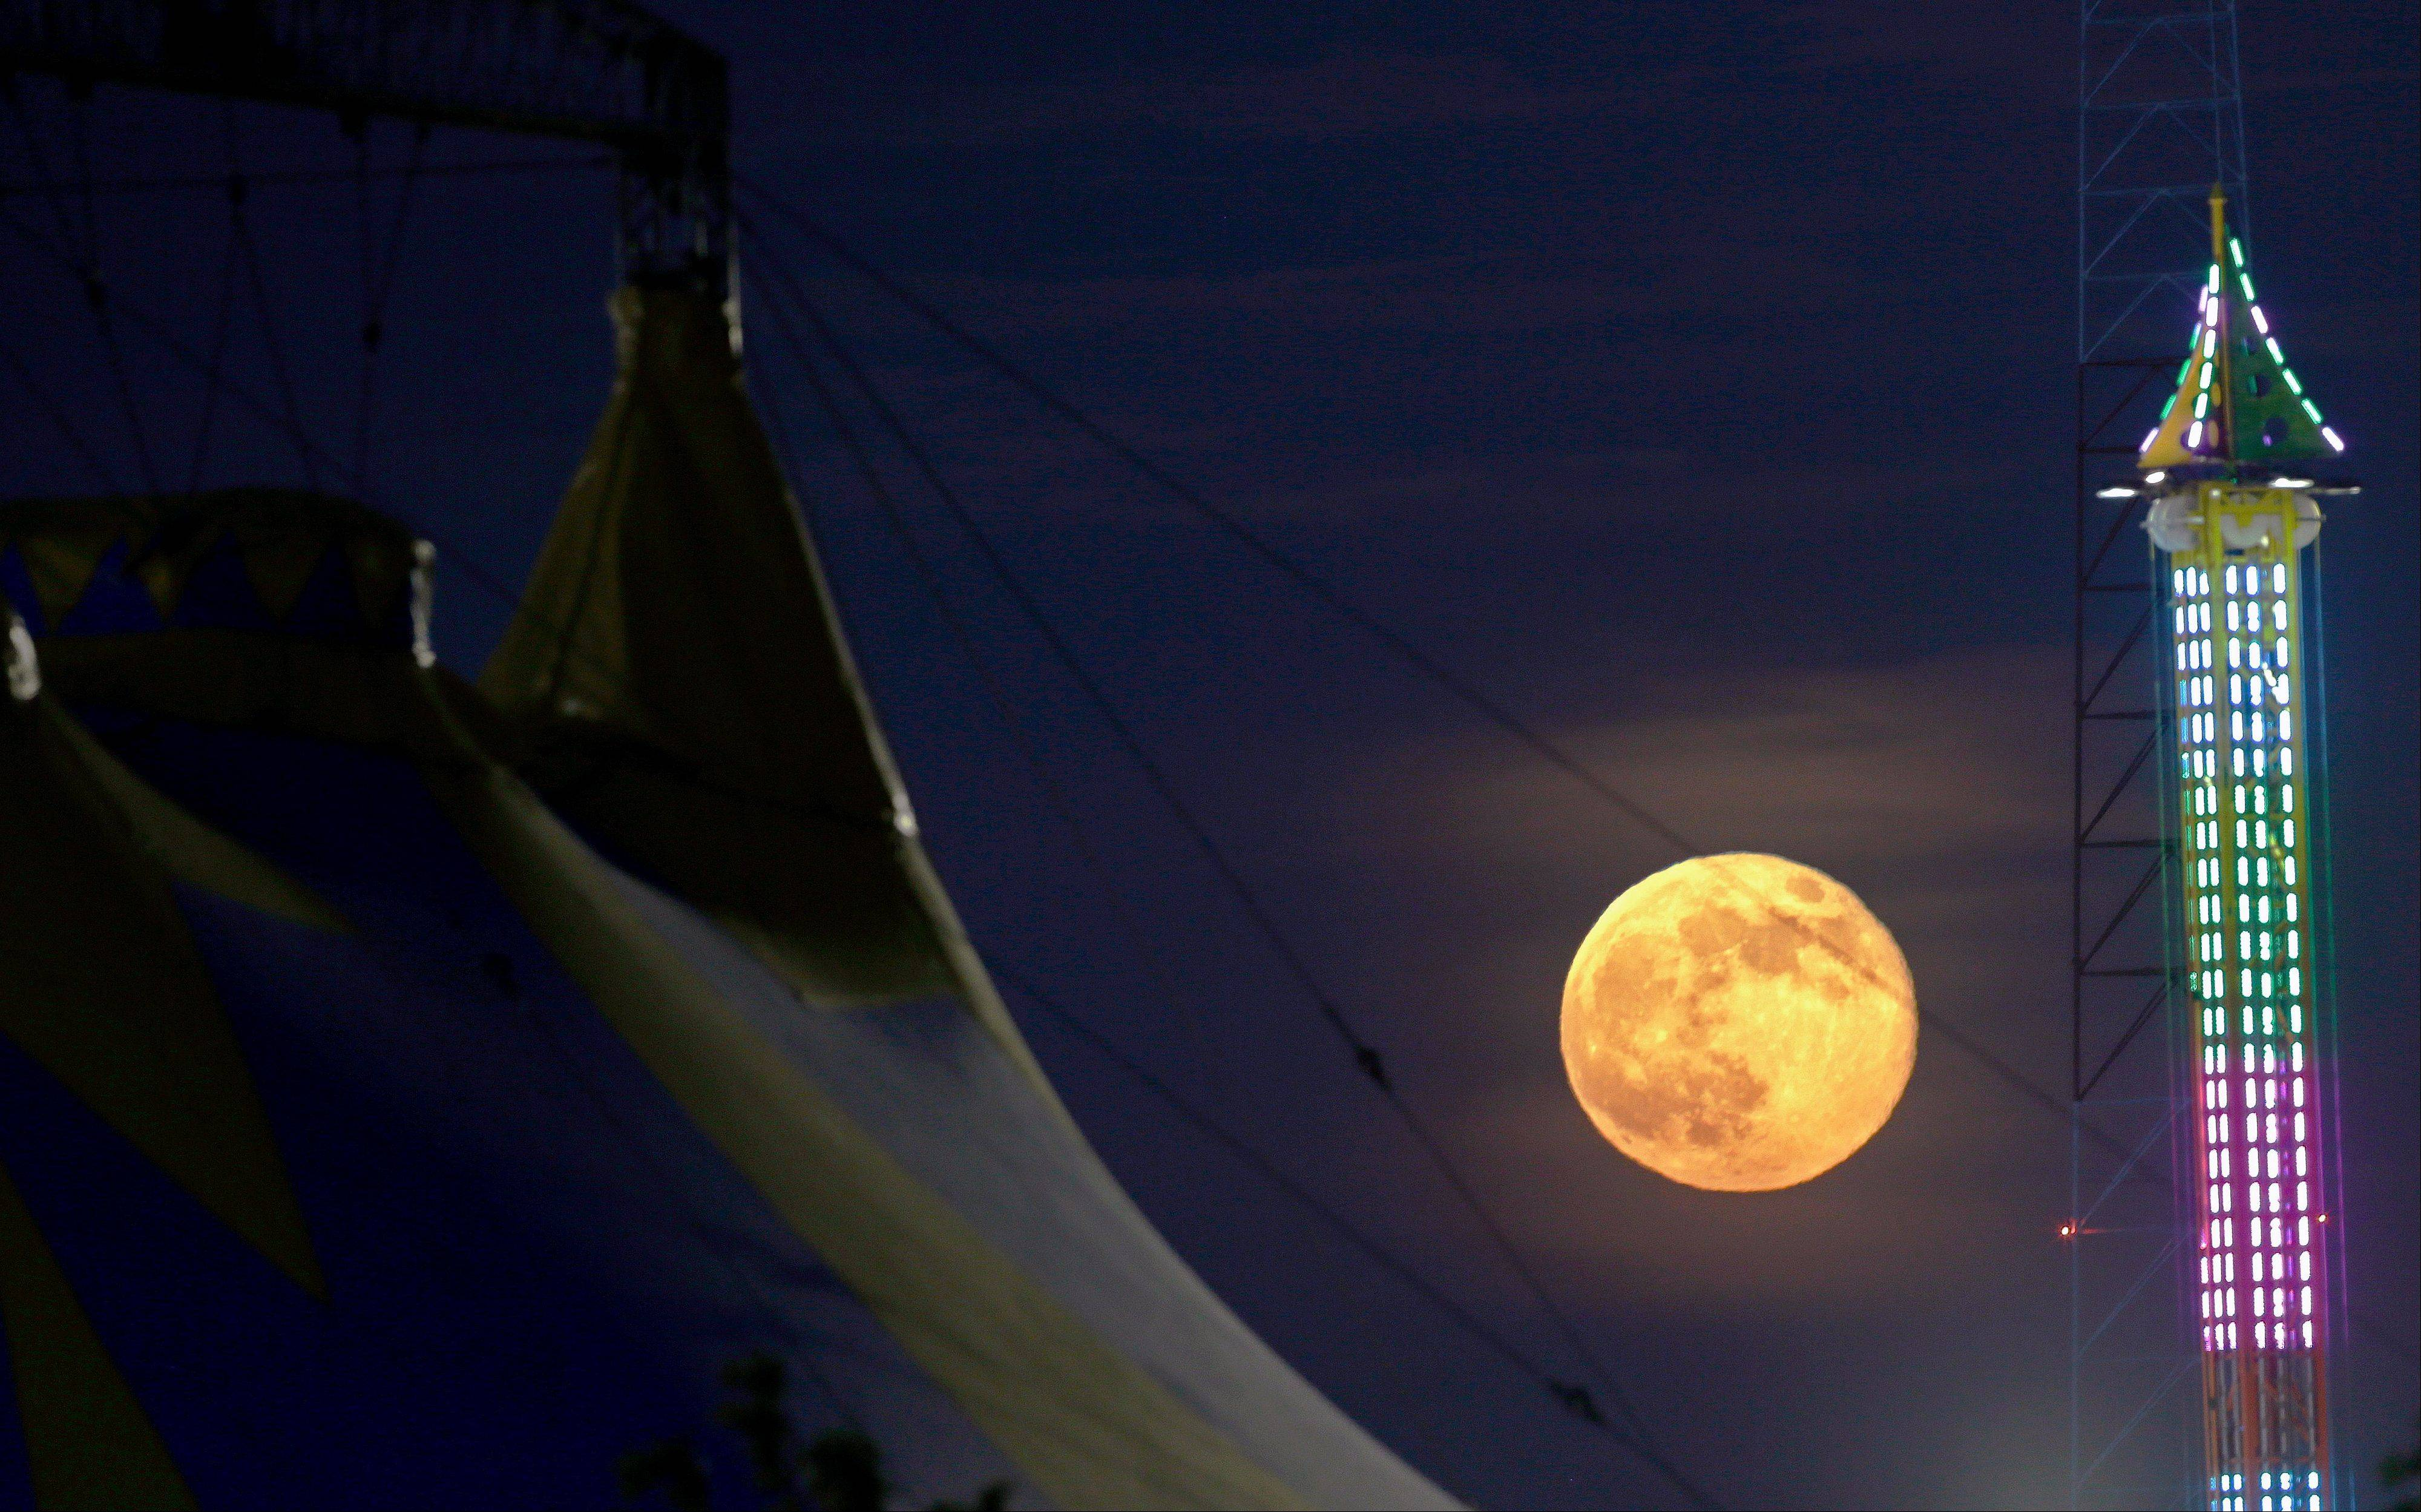 The moon rises between a tent, left, and a ride at State Fair Meadowlands, Sunday, June 23, 2013, in East Rutherford, N.J. The so-called supermoon appeared up to 14 percent larger than normal this weekend as our celestial neighbor swung closer to Earth, reaching its closest distance early Sunday morning.